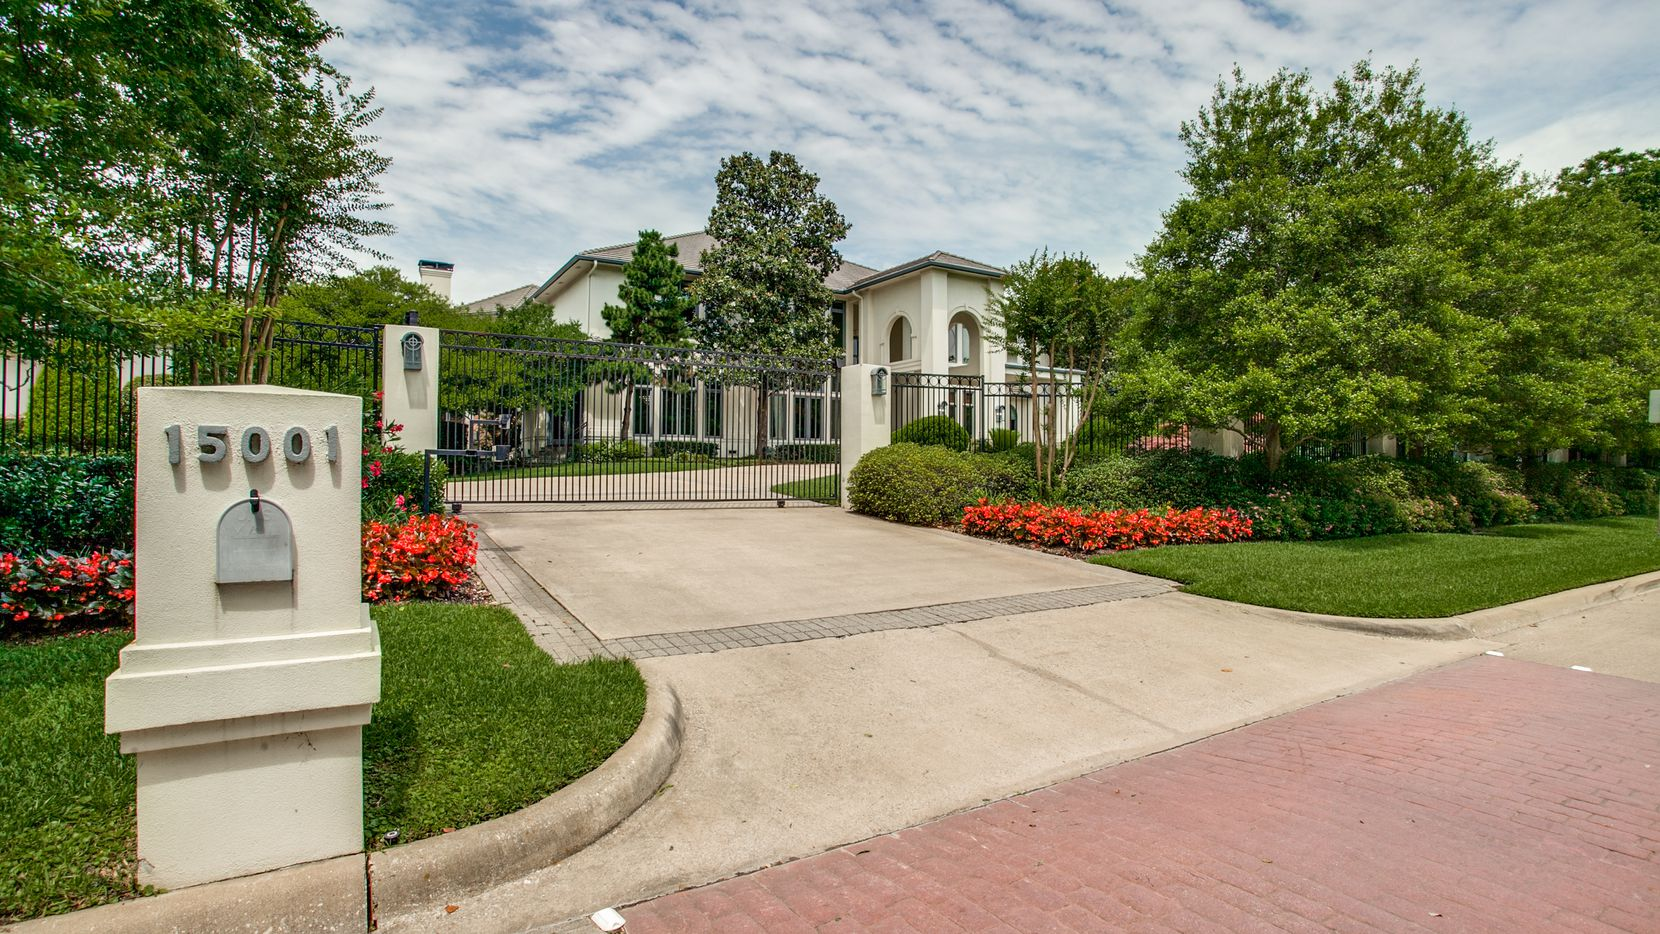 The home at 15001 Winnwood Road in Dallas was custom-built for former Dallas Cowboys running back Emmitt Smith in 1995.